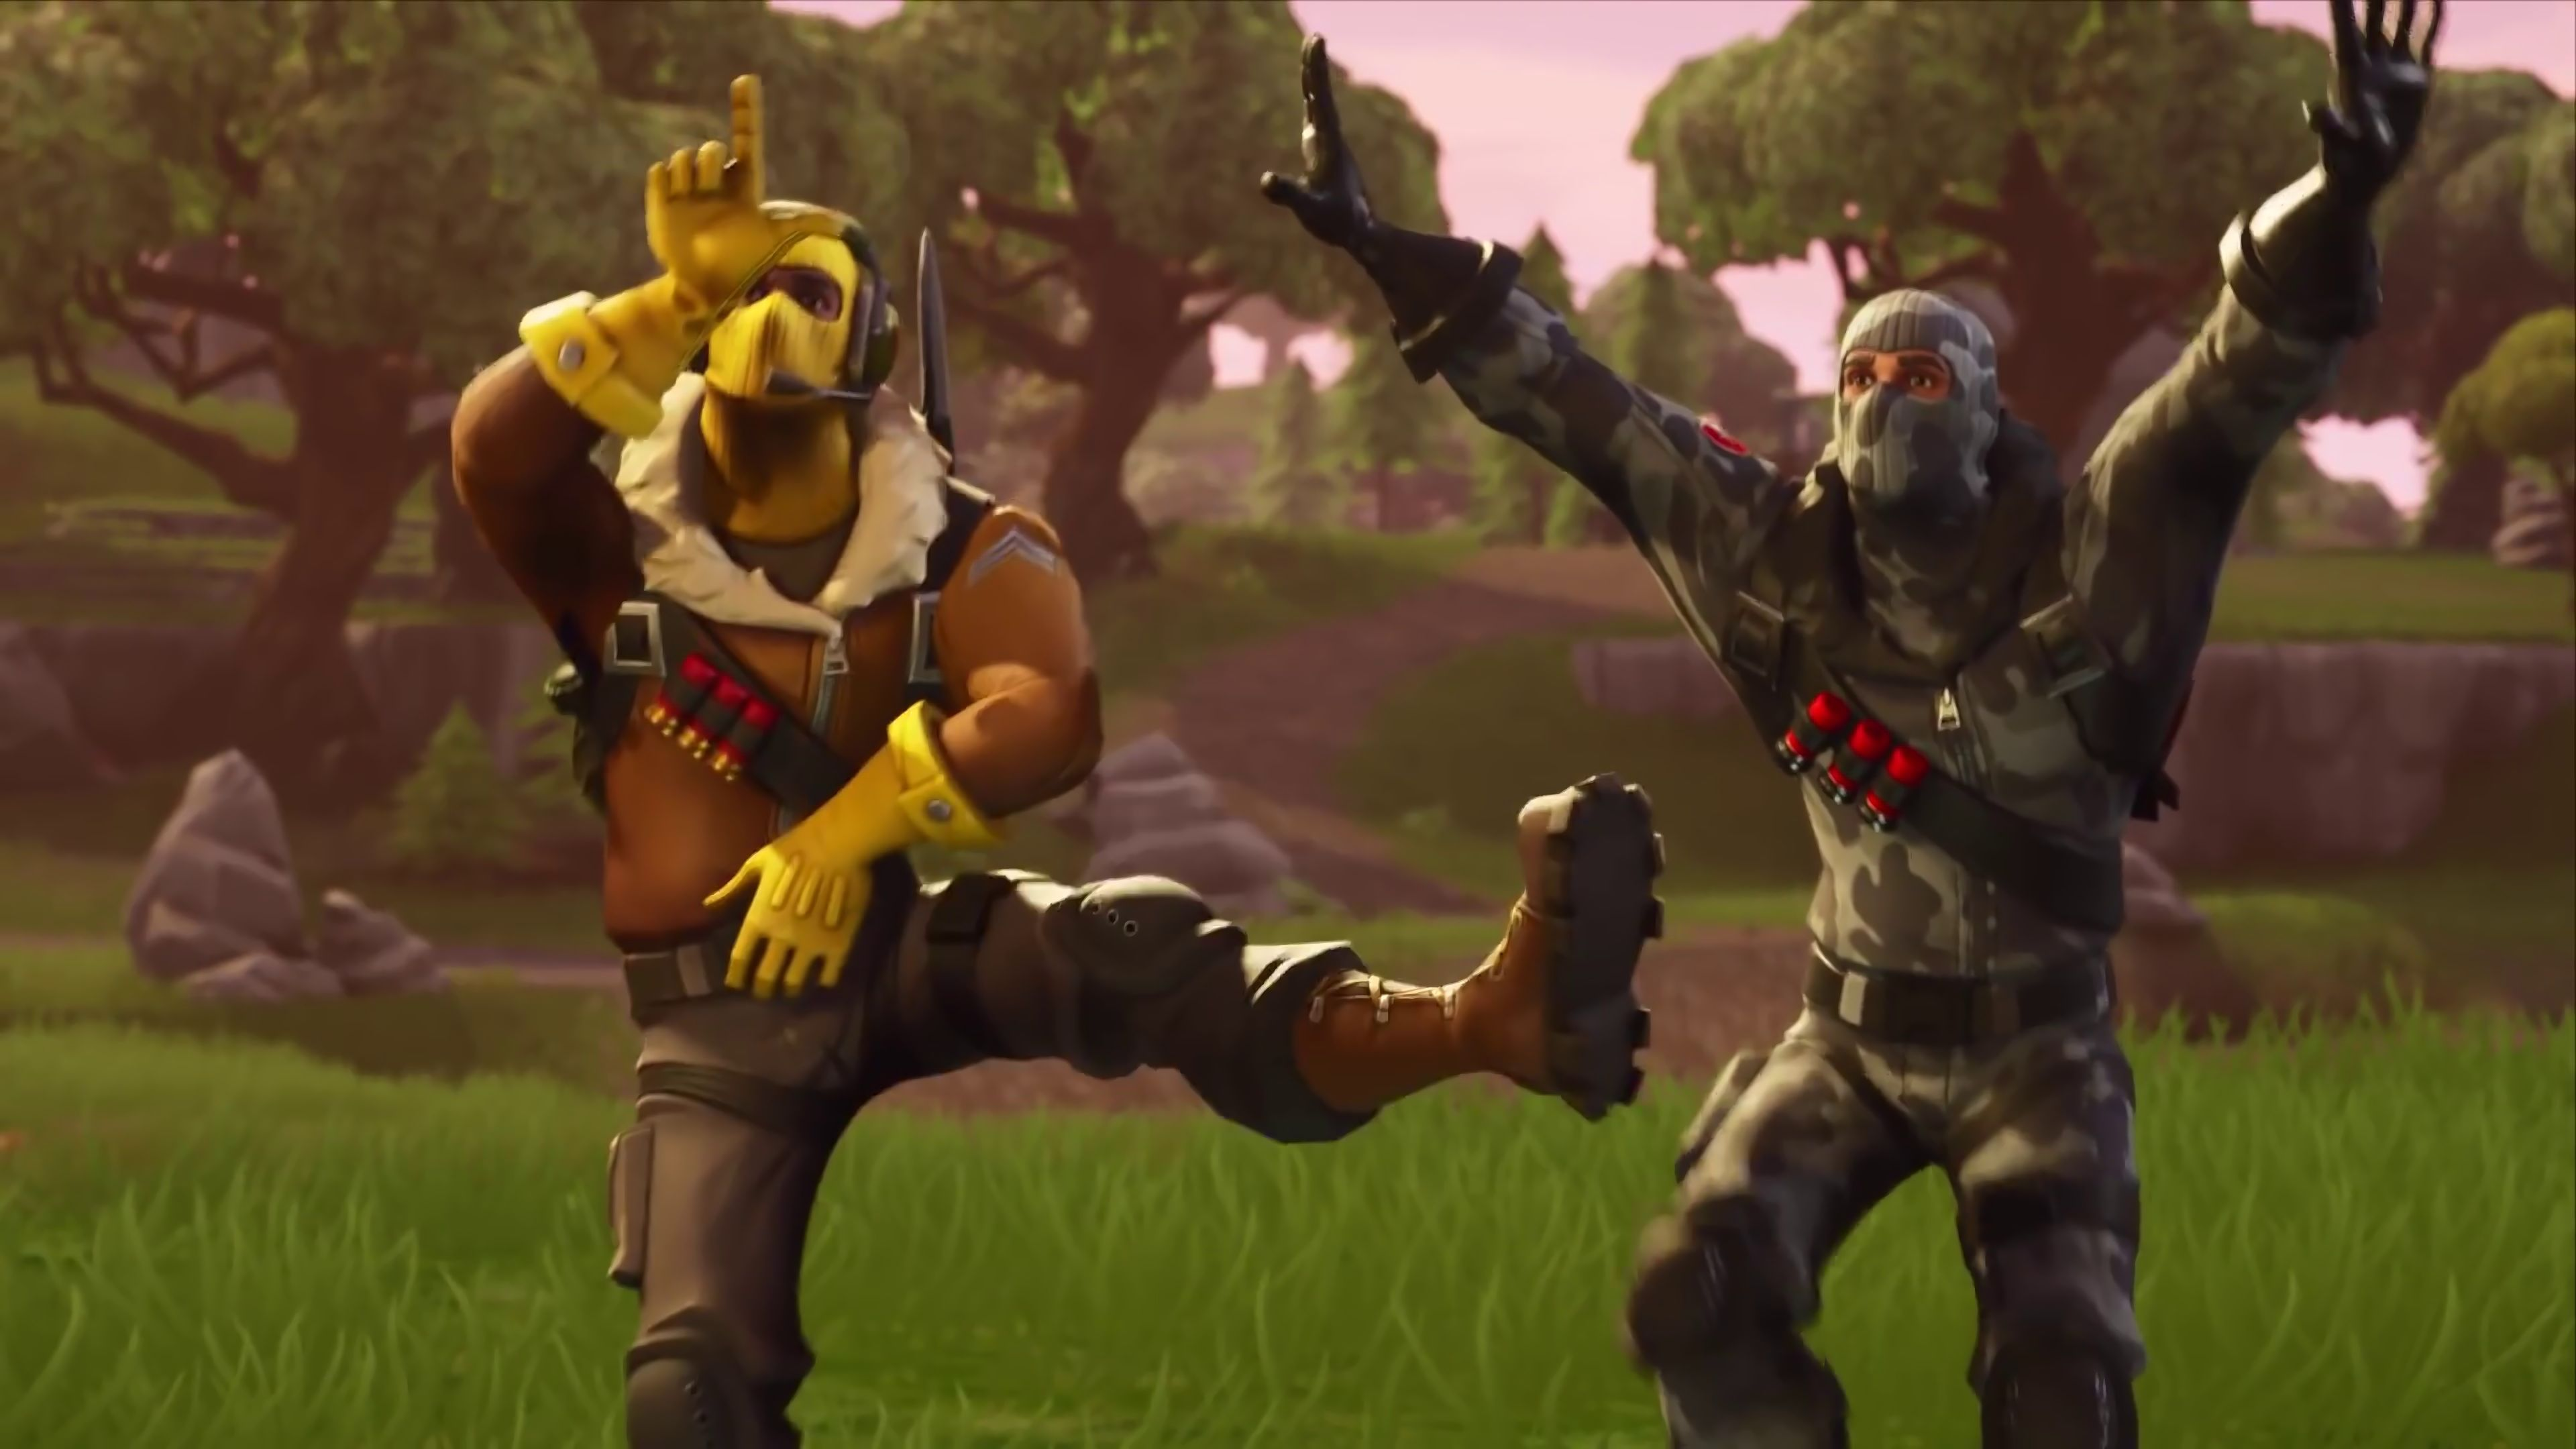 43 Best Free Dancing Fortnite Desktop Wallpapers Wallpaperaccess